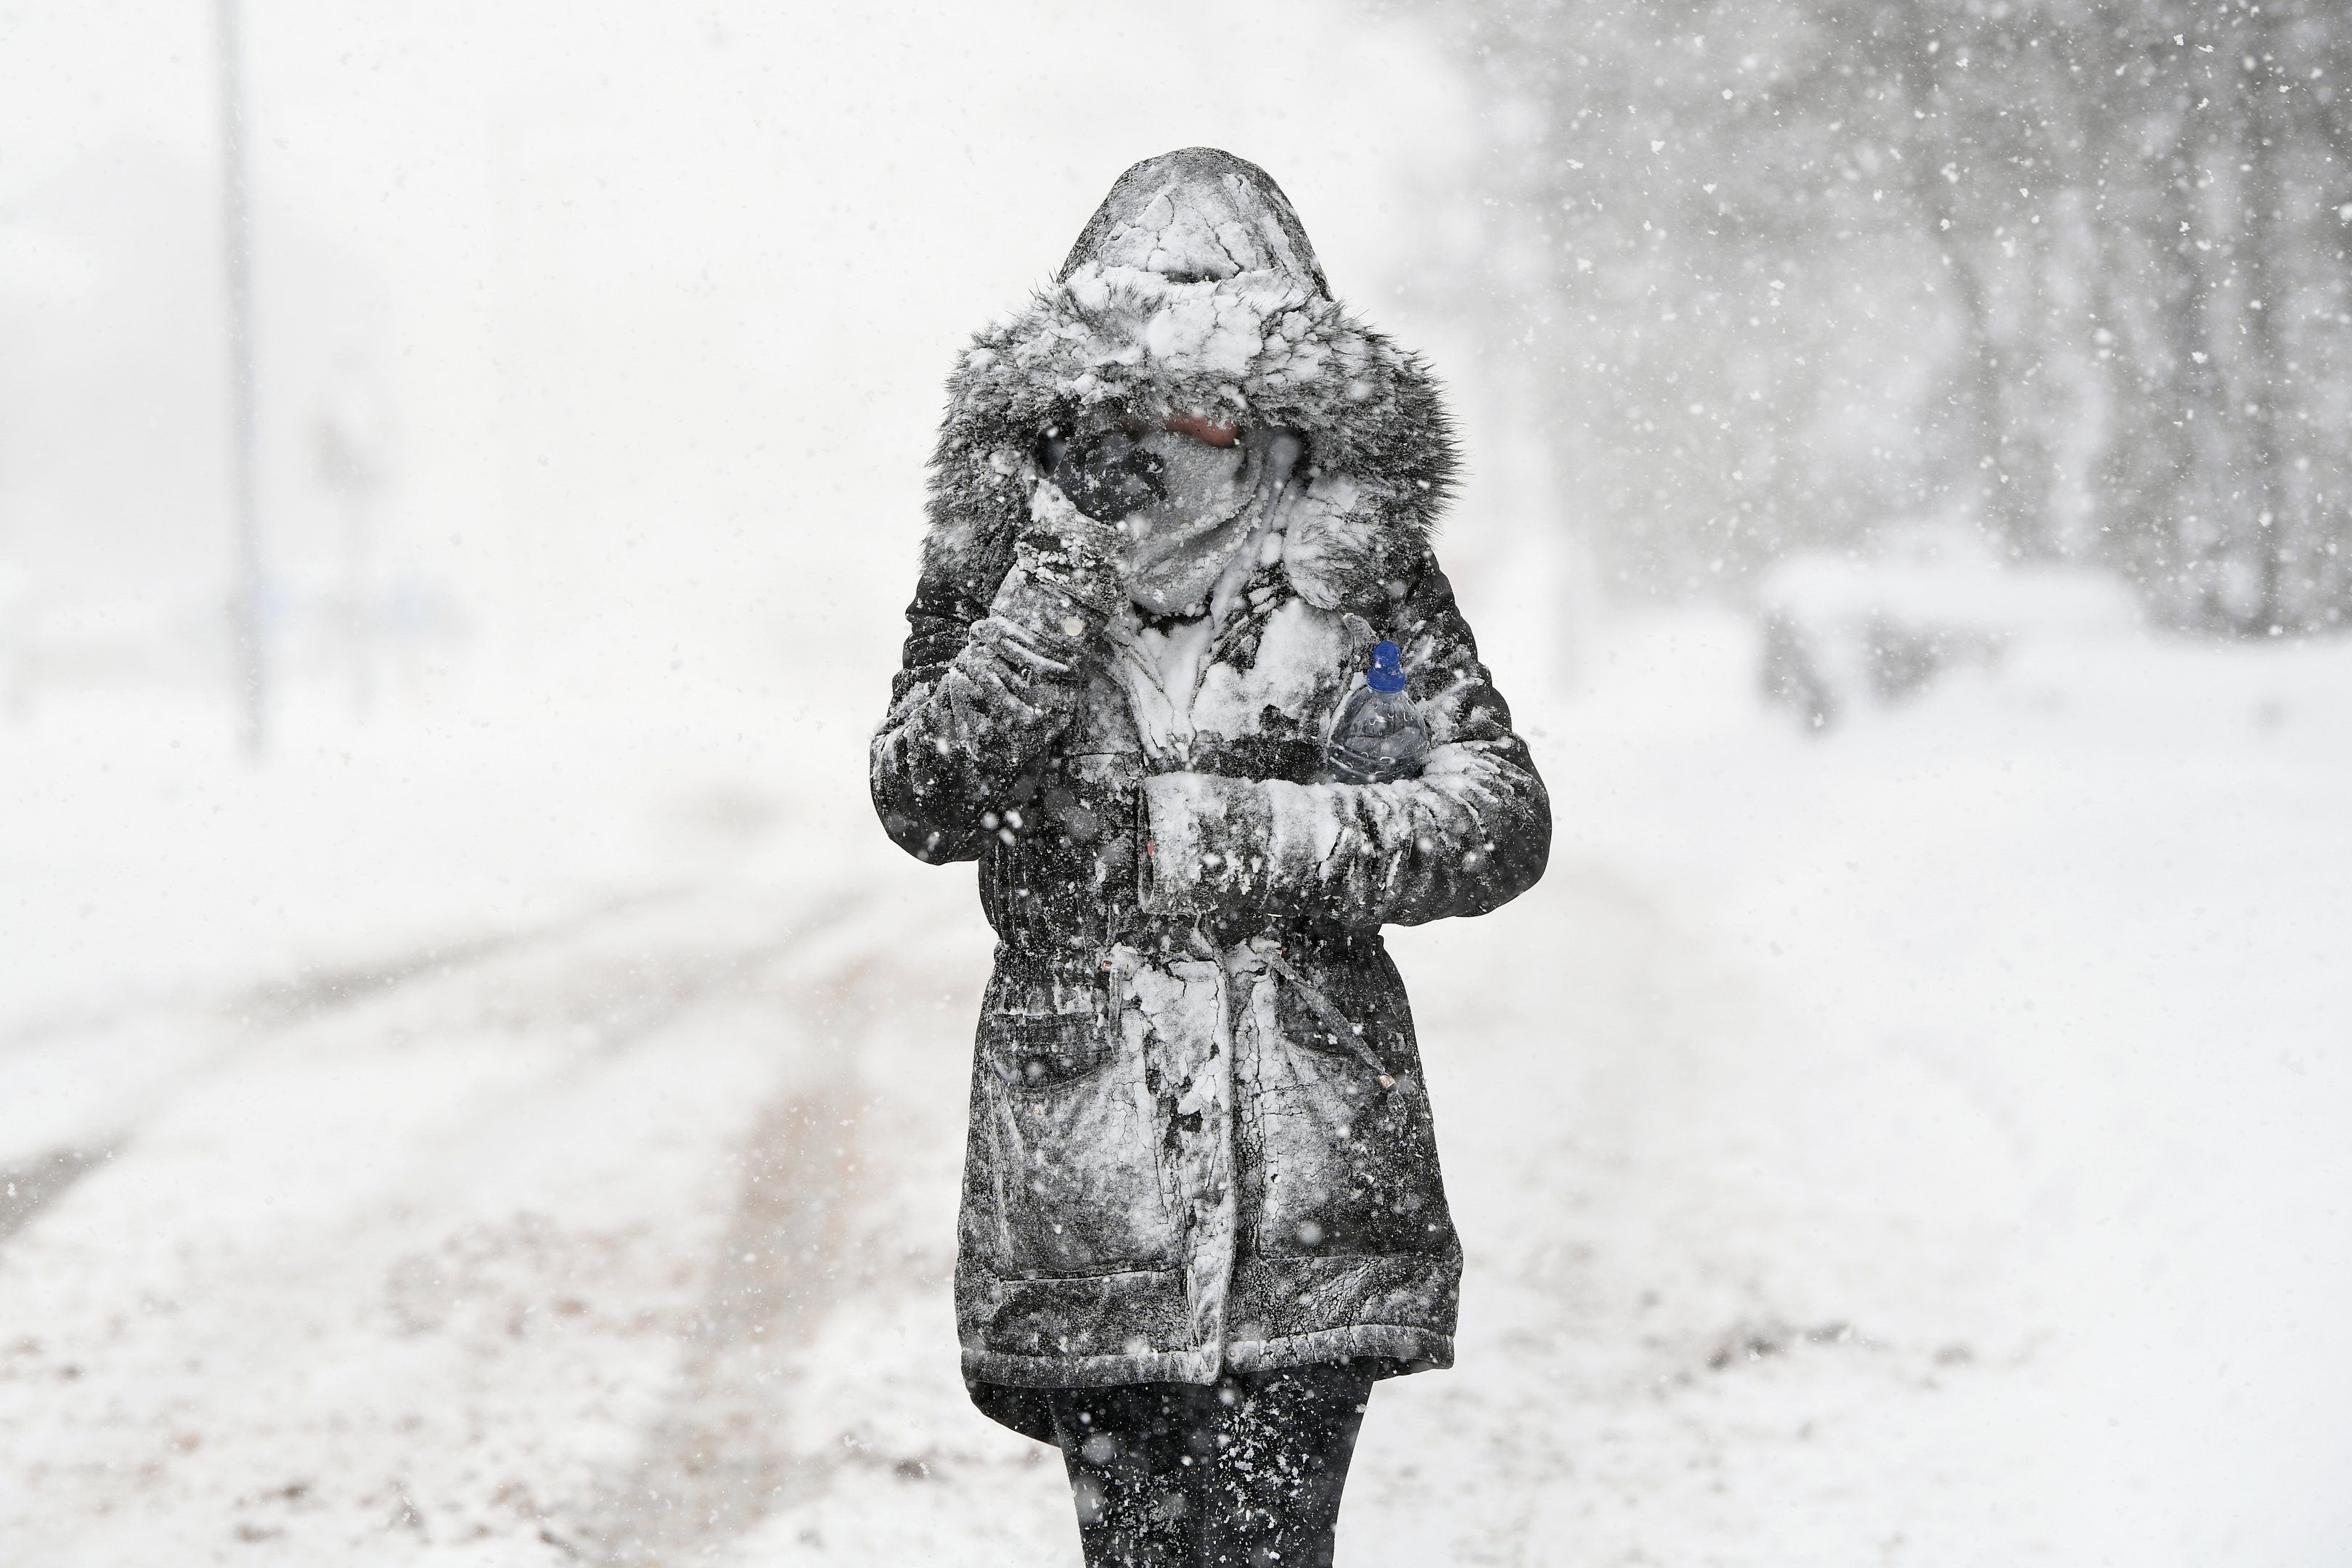 A woman makes her way through the snow on March 1, 2018 in Balloch, Scotland. (Jeff J Mitchell/Getty Images)